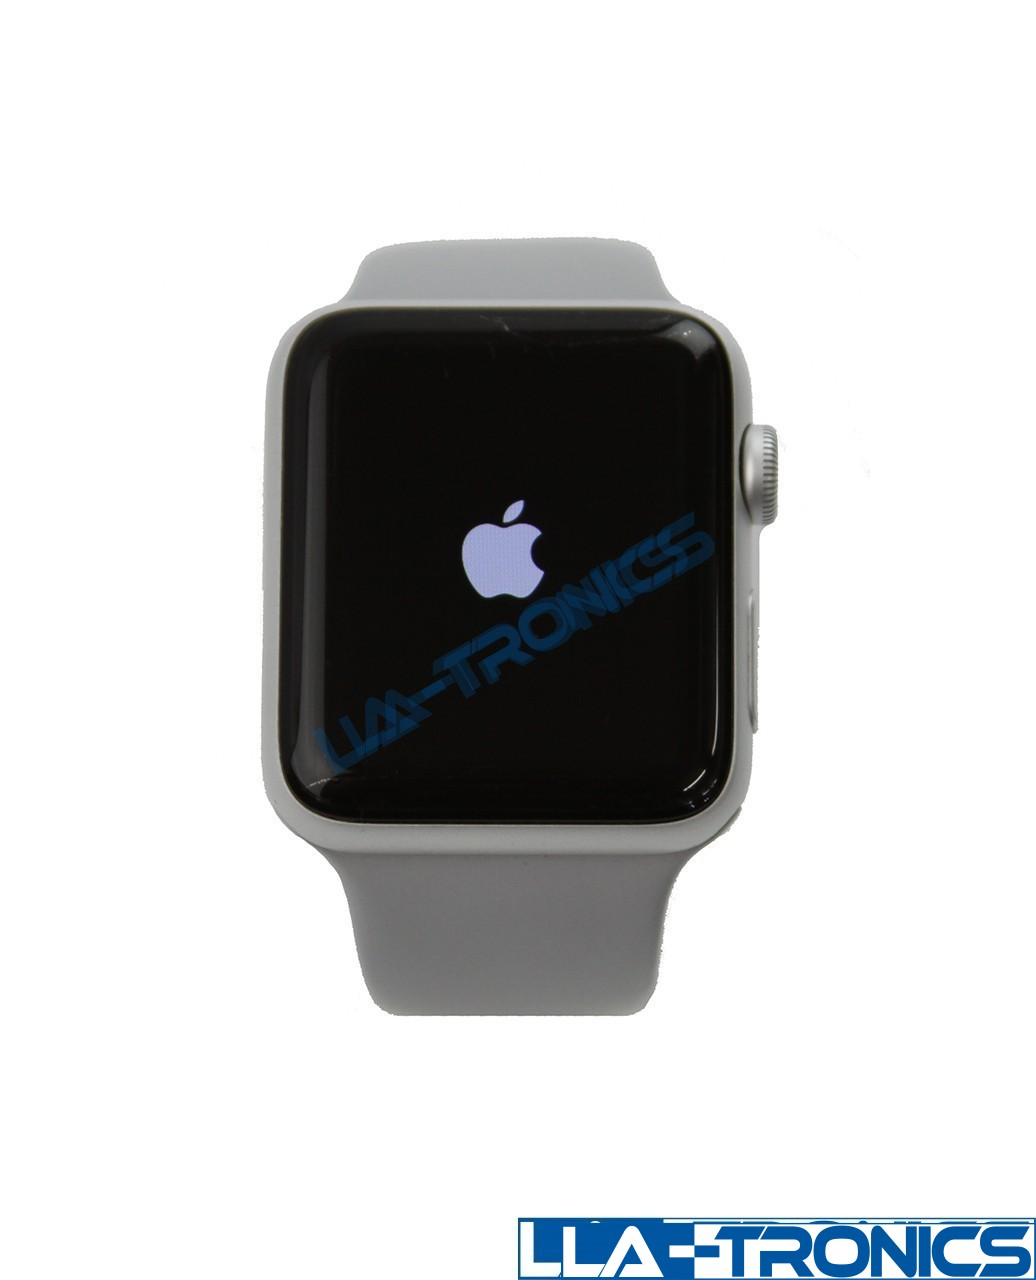 Apple Watch Series 3 Model A1859 42mm GPS Aluminum - Silver